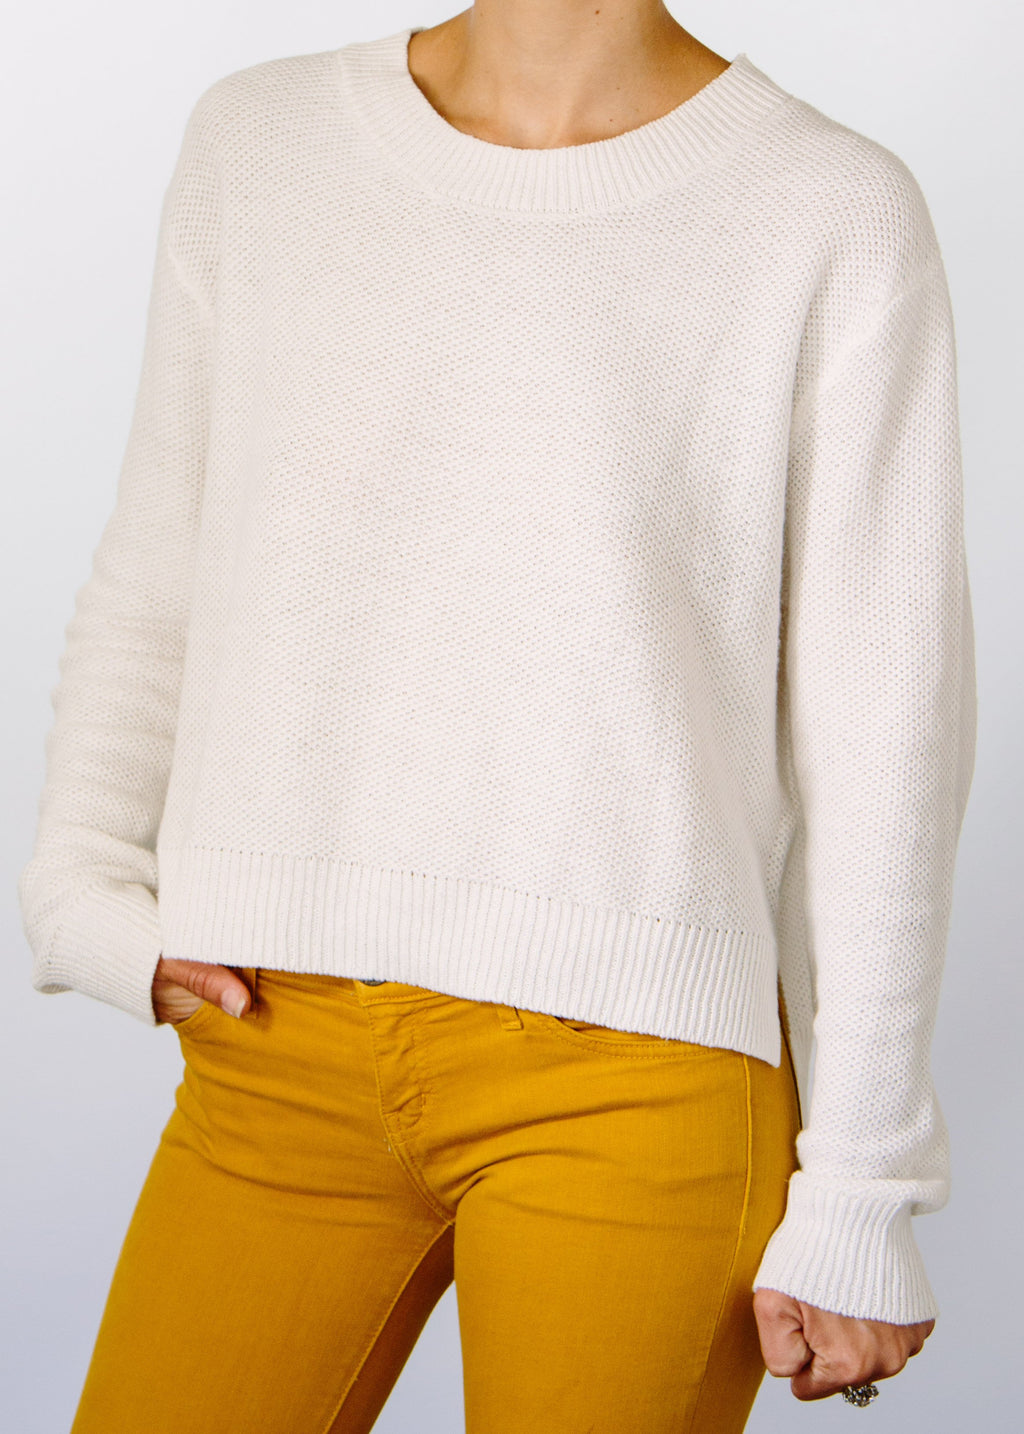 Wendy Hi-Lo Hemp Sweater